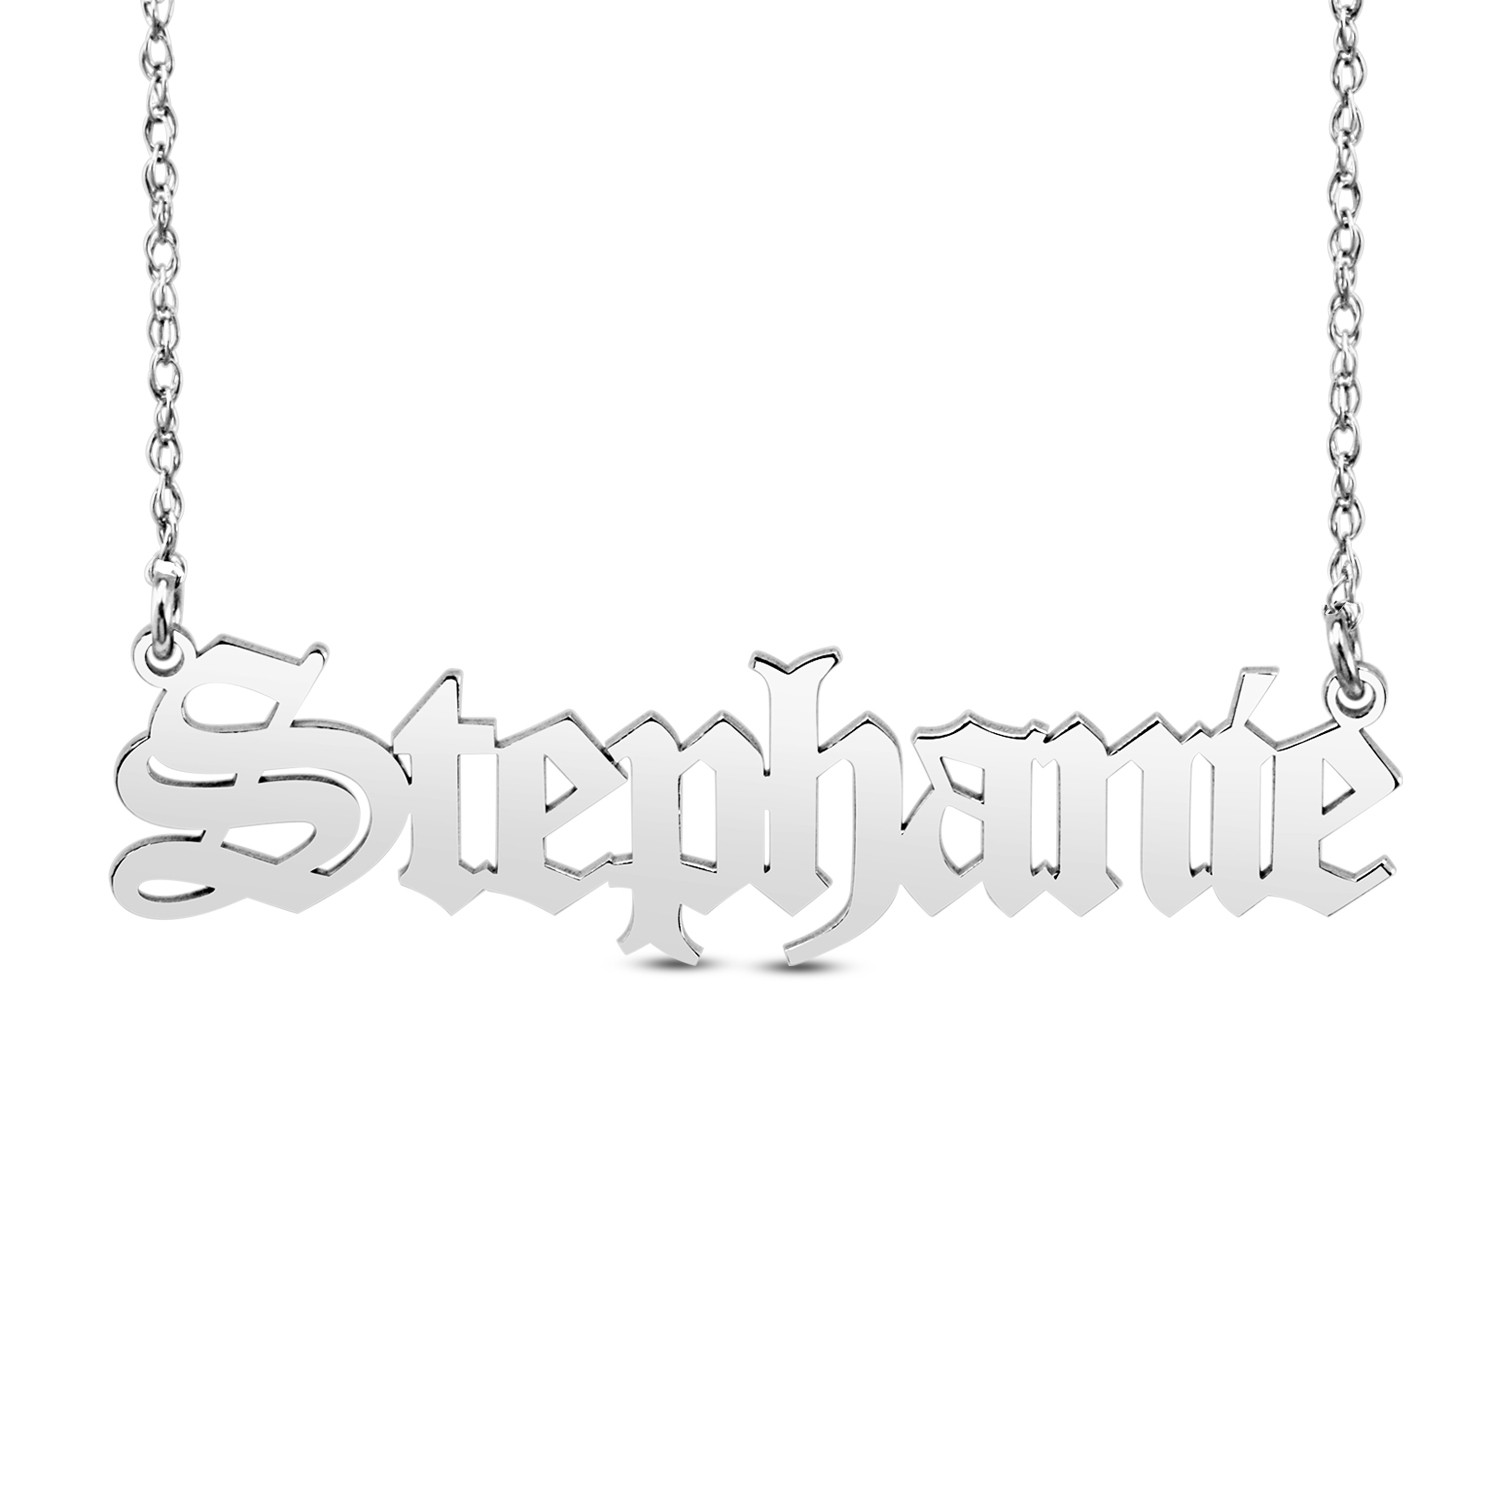 """HI Polish Name Pers Necklace - 9 letter max 1 Uppercase letter (Example: Stephanie S=8.02mm x 1.84"""" e=6.77mm)"""